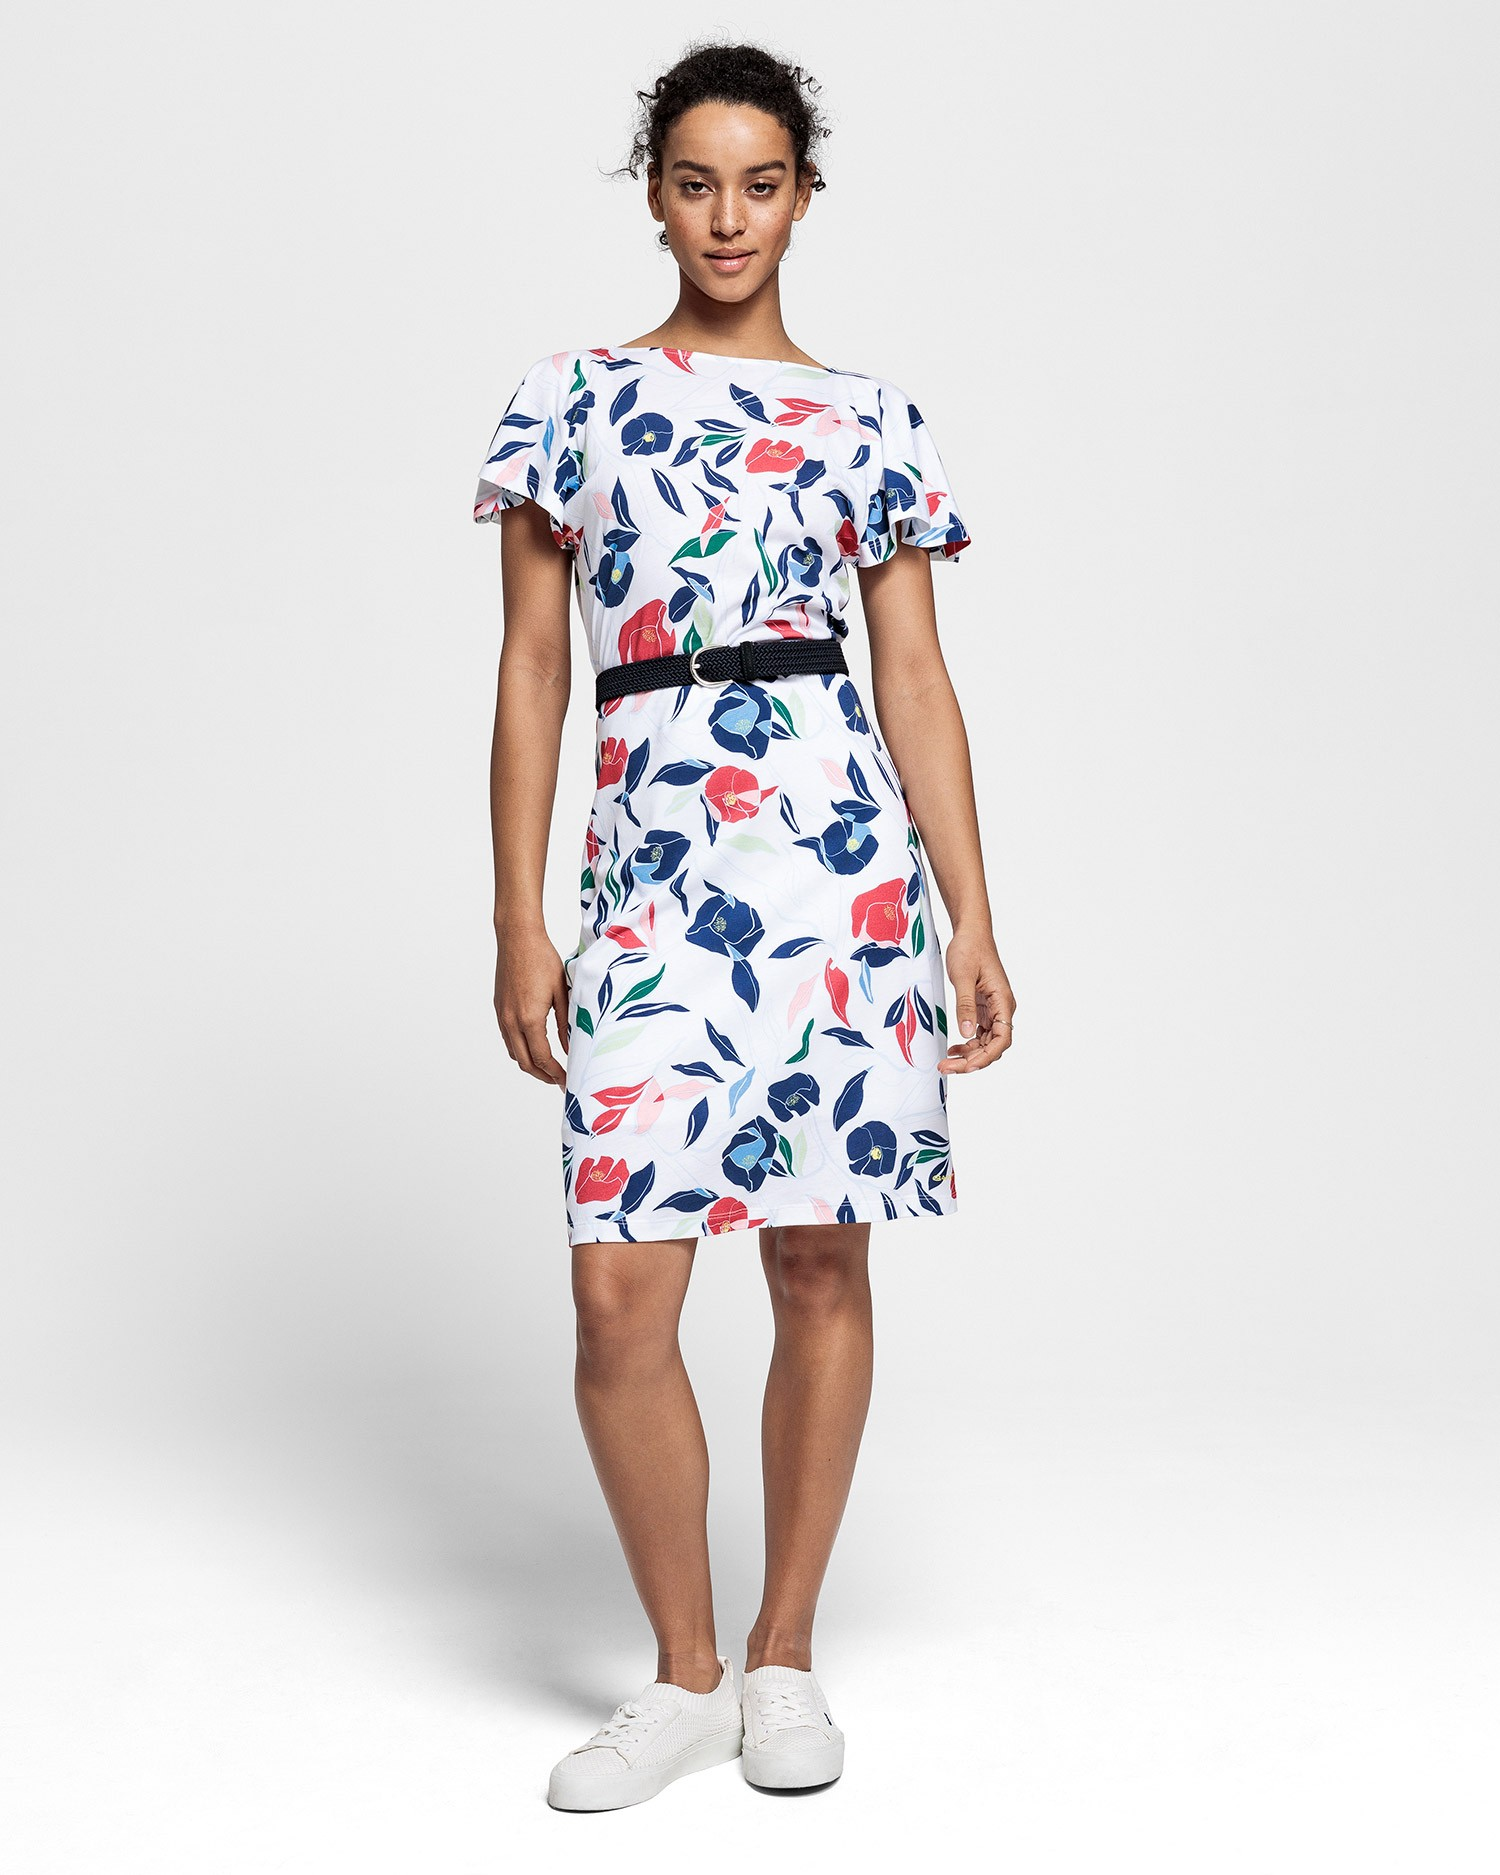 GANT Women's Dress - 4205300